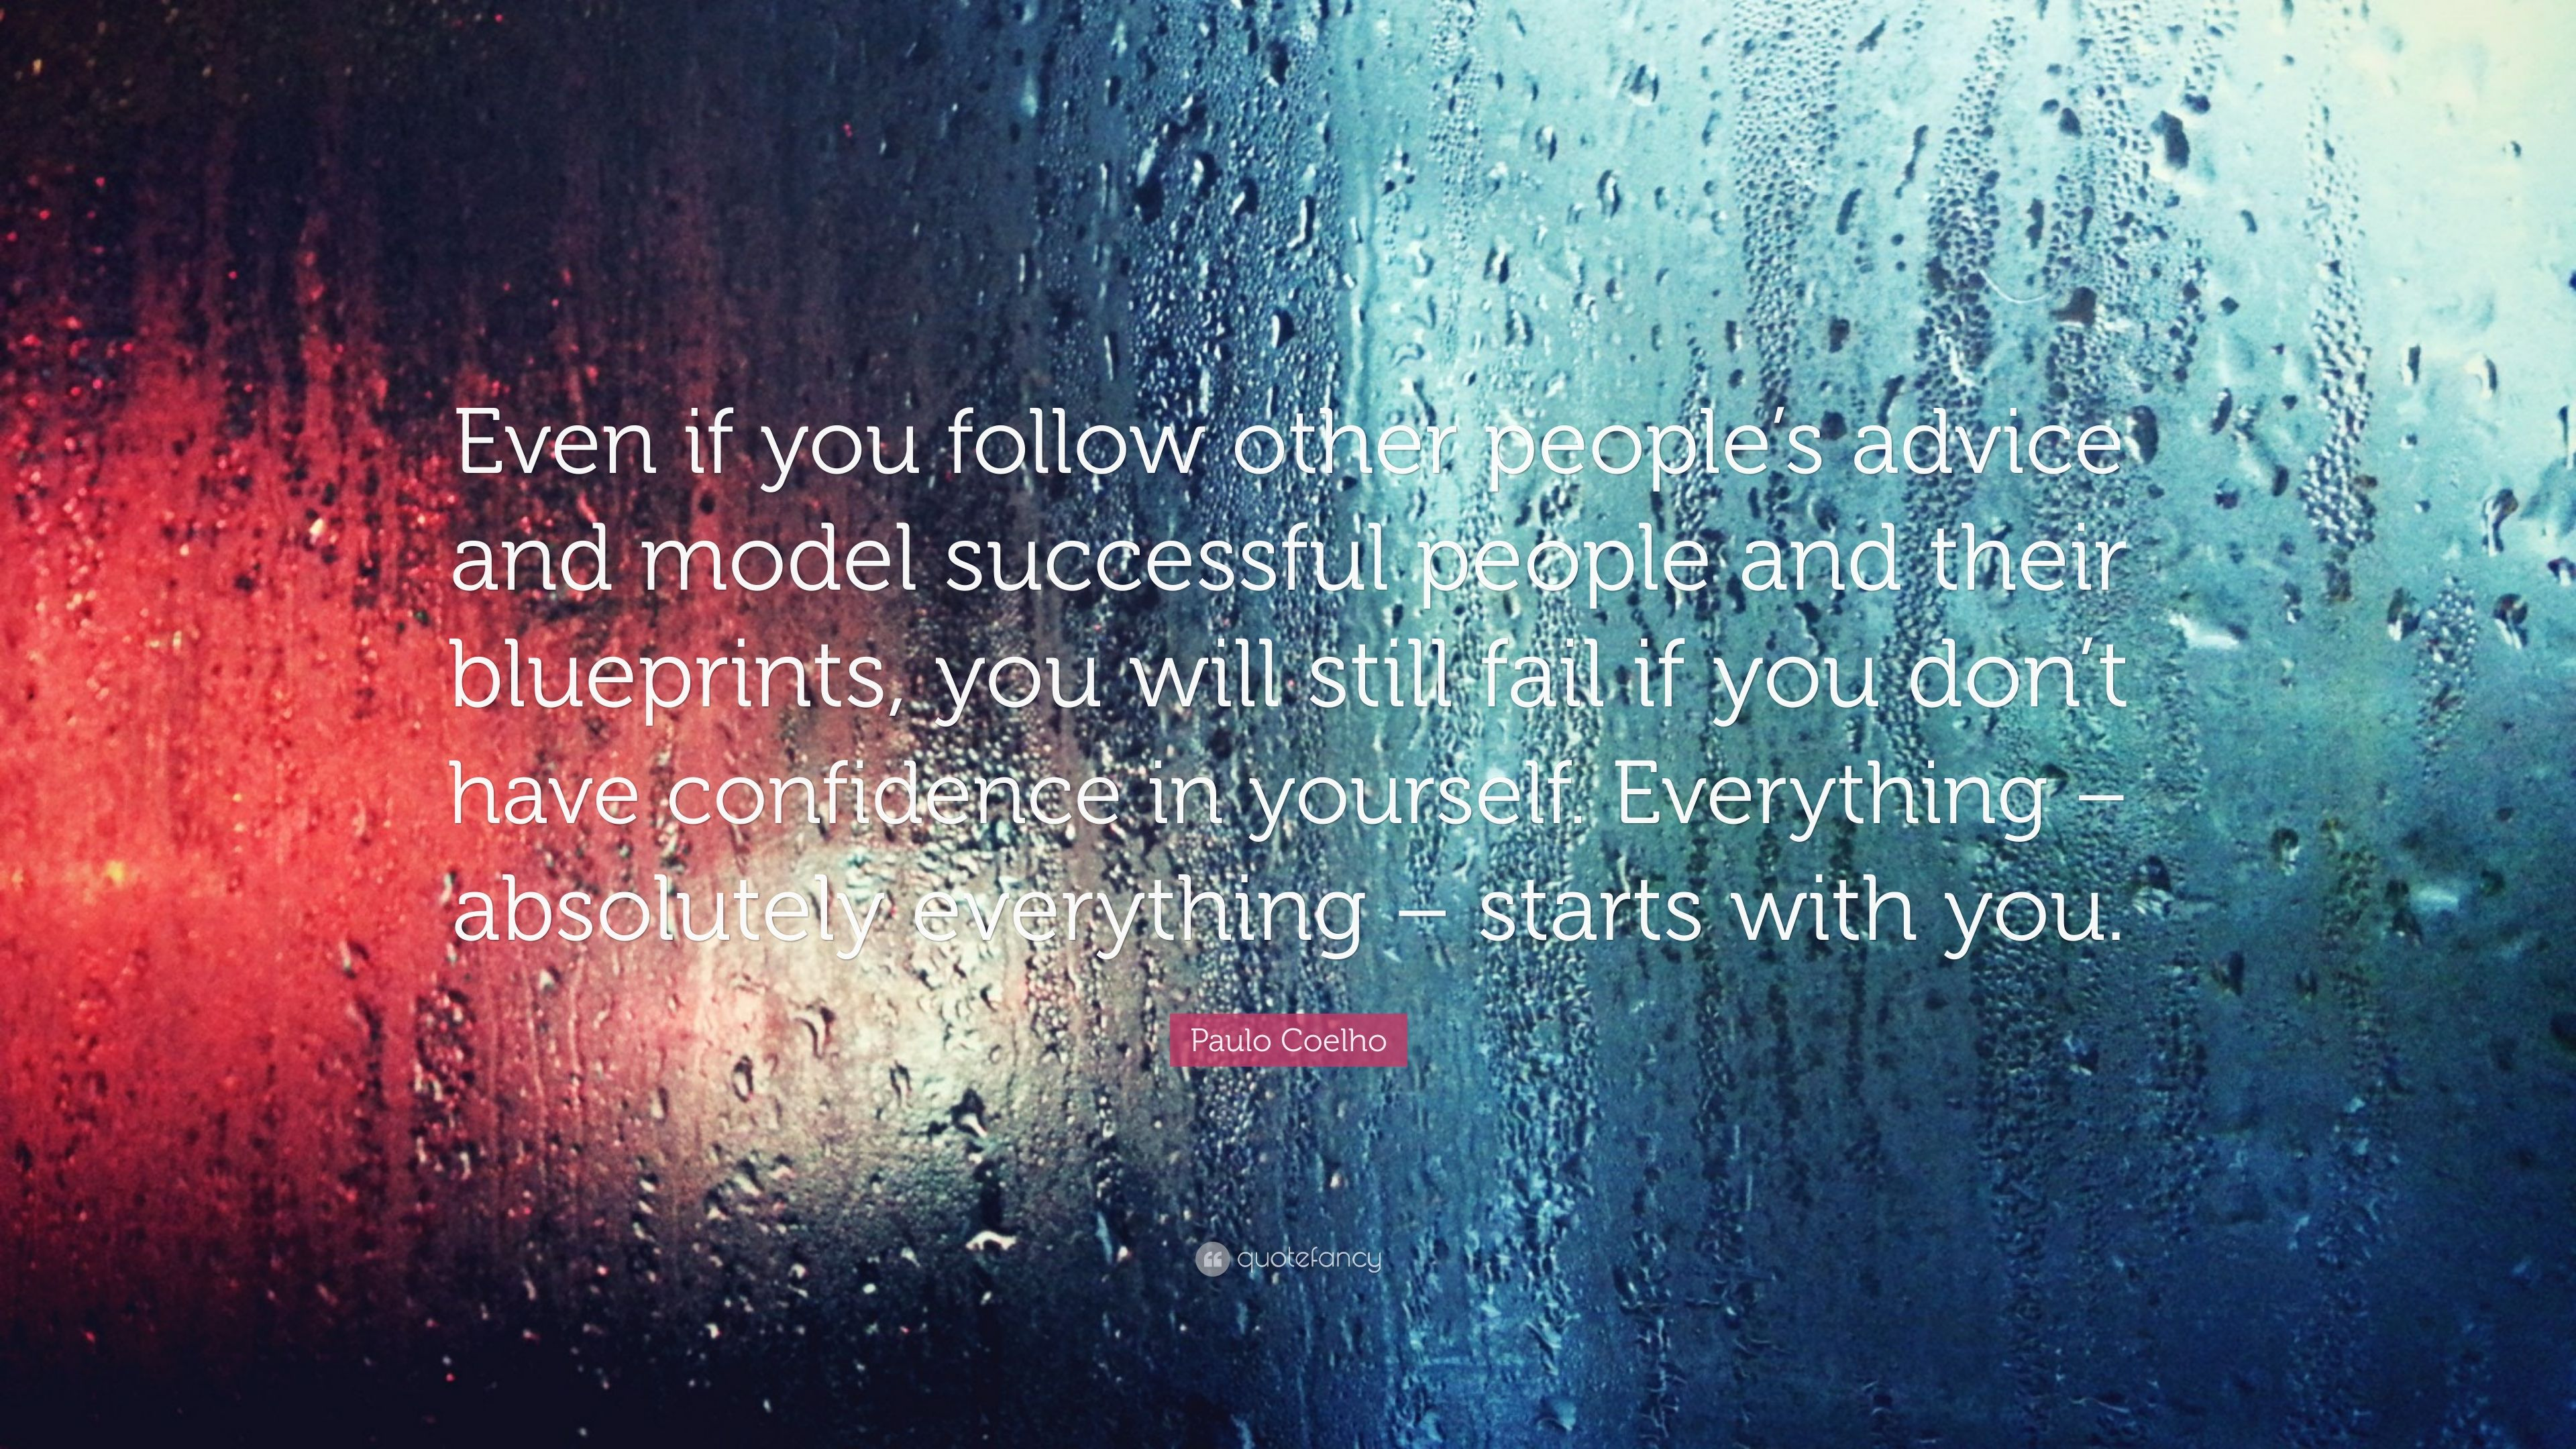 Paulo coelho quote even if you follow other peoples advice and paulo coelho quote even if you follow other peoples advice and model successful people malvernweather Gallery